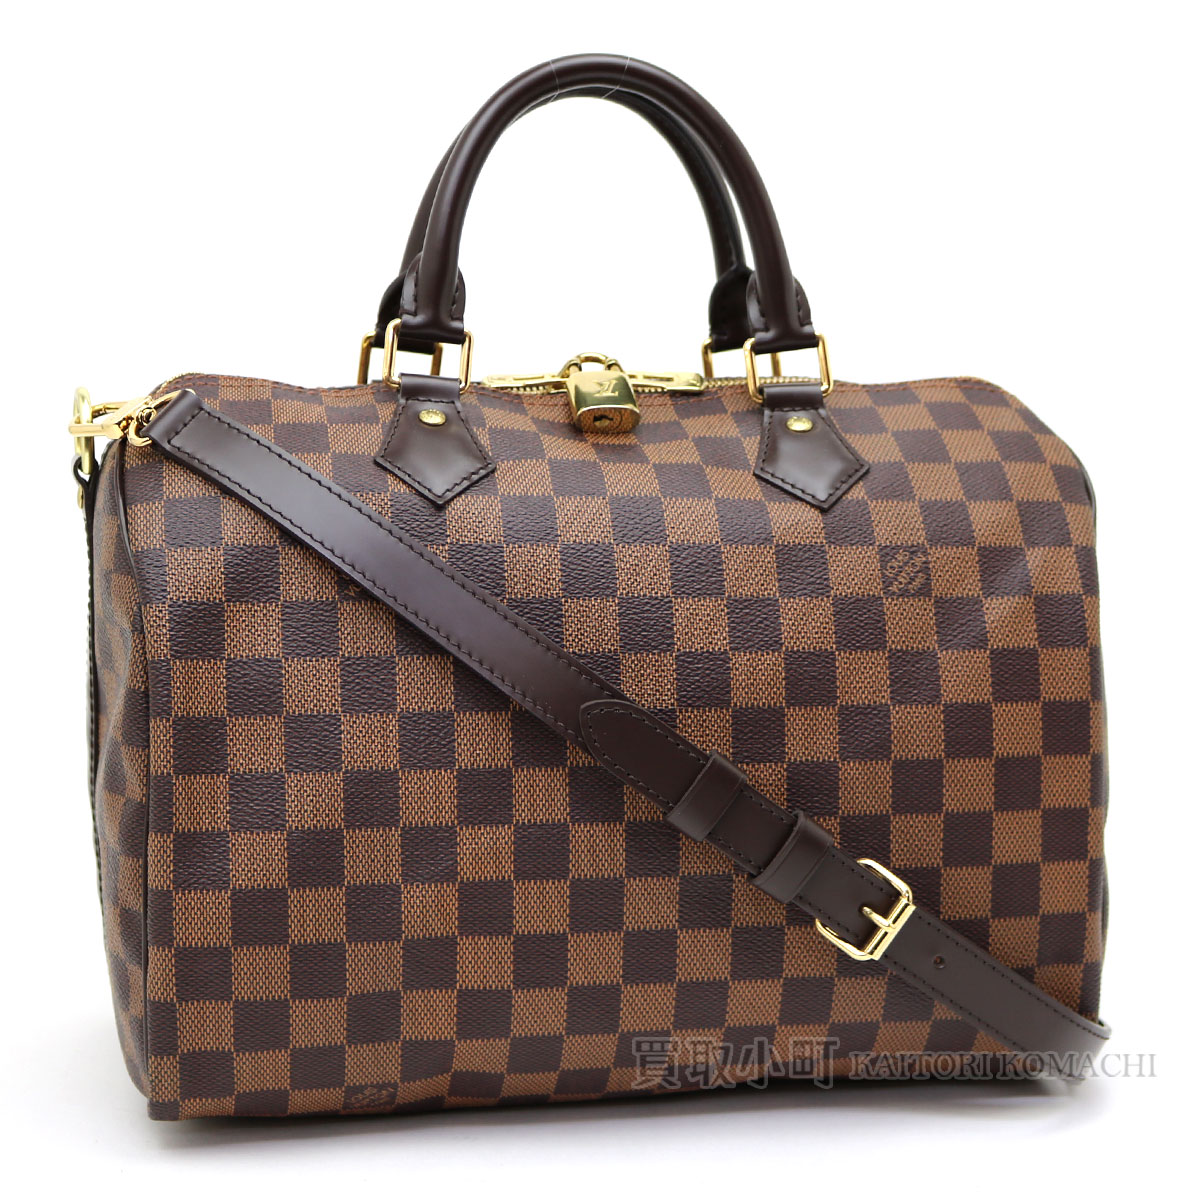 3a19a6e7cf20 Speedy 30 LV SPEEDY BANDOULIERE 30 DAMIER with Louis Vuitton N41367 speedy  band re-yell 30 ダミエアイコンボストンバッグ 2WAY shoulder bag handbag strap